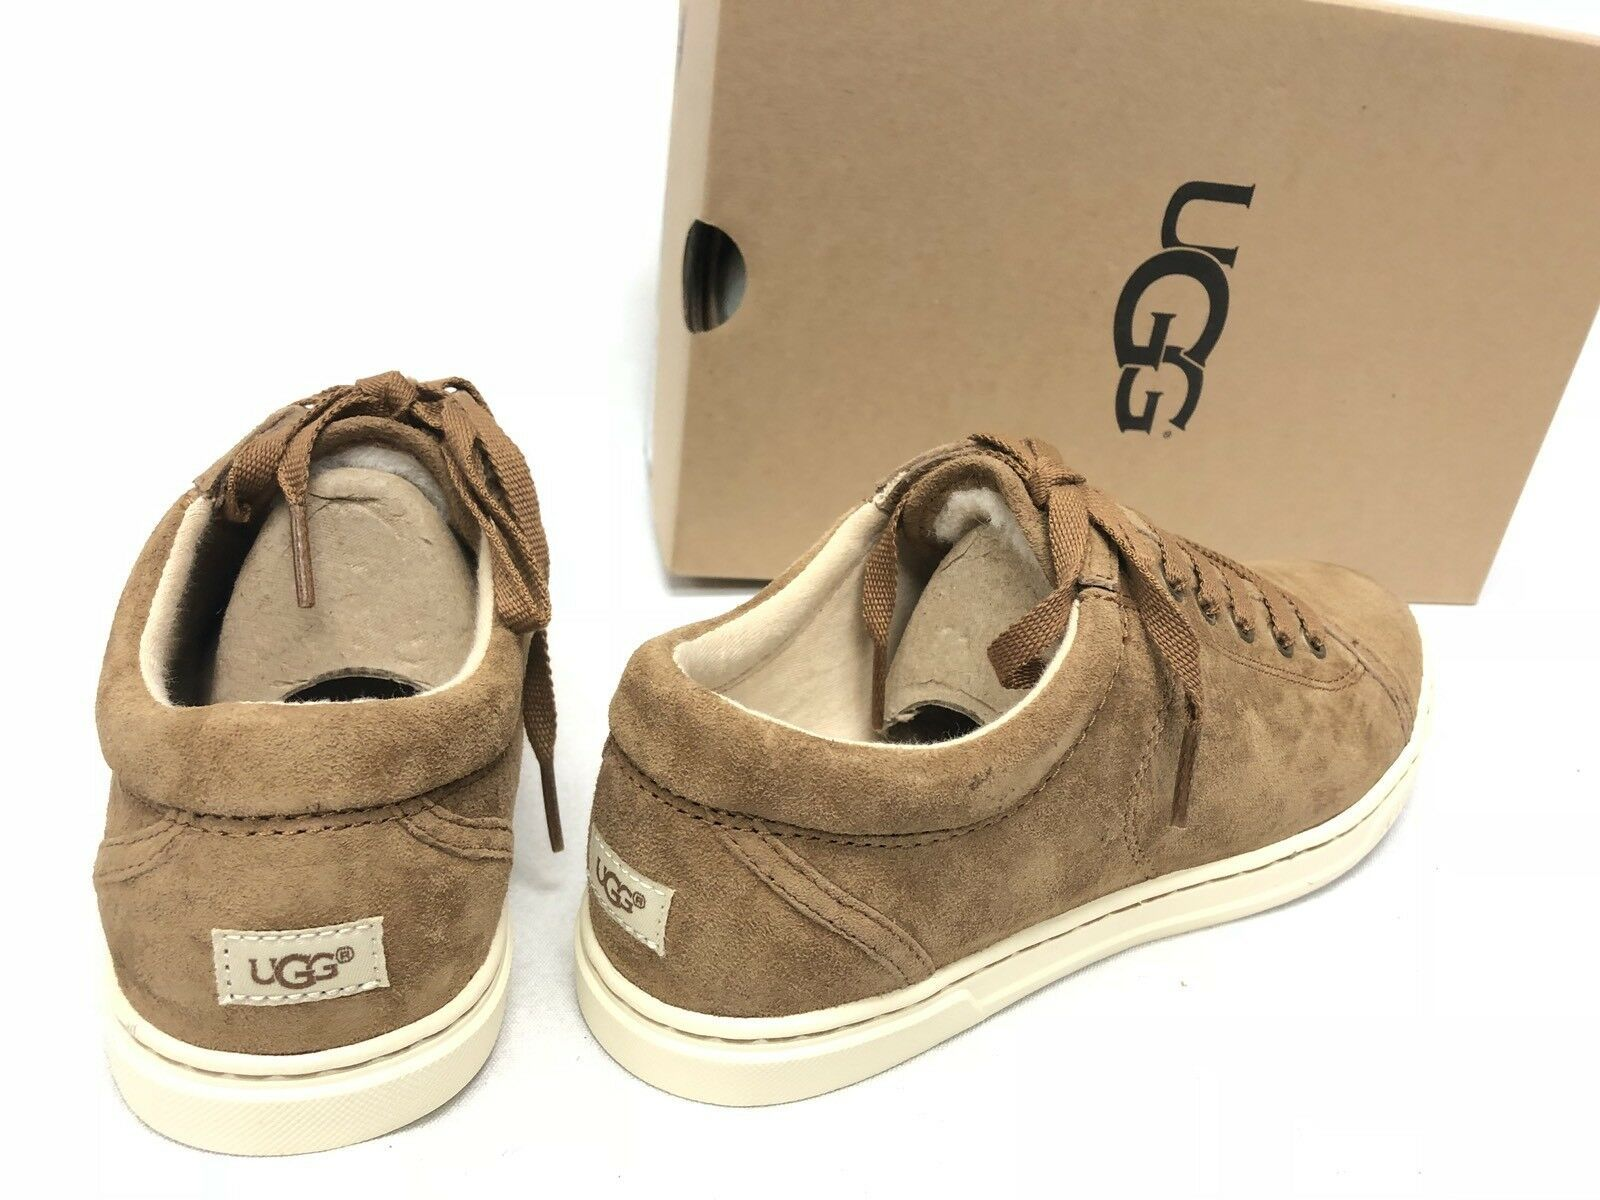 UGG Australia TOMI 1005484 Chestnut Fashion sneakers shoe 1005485 Lace Up